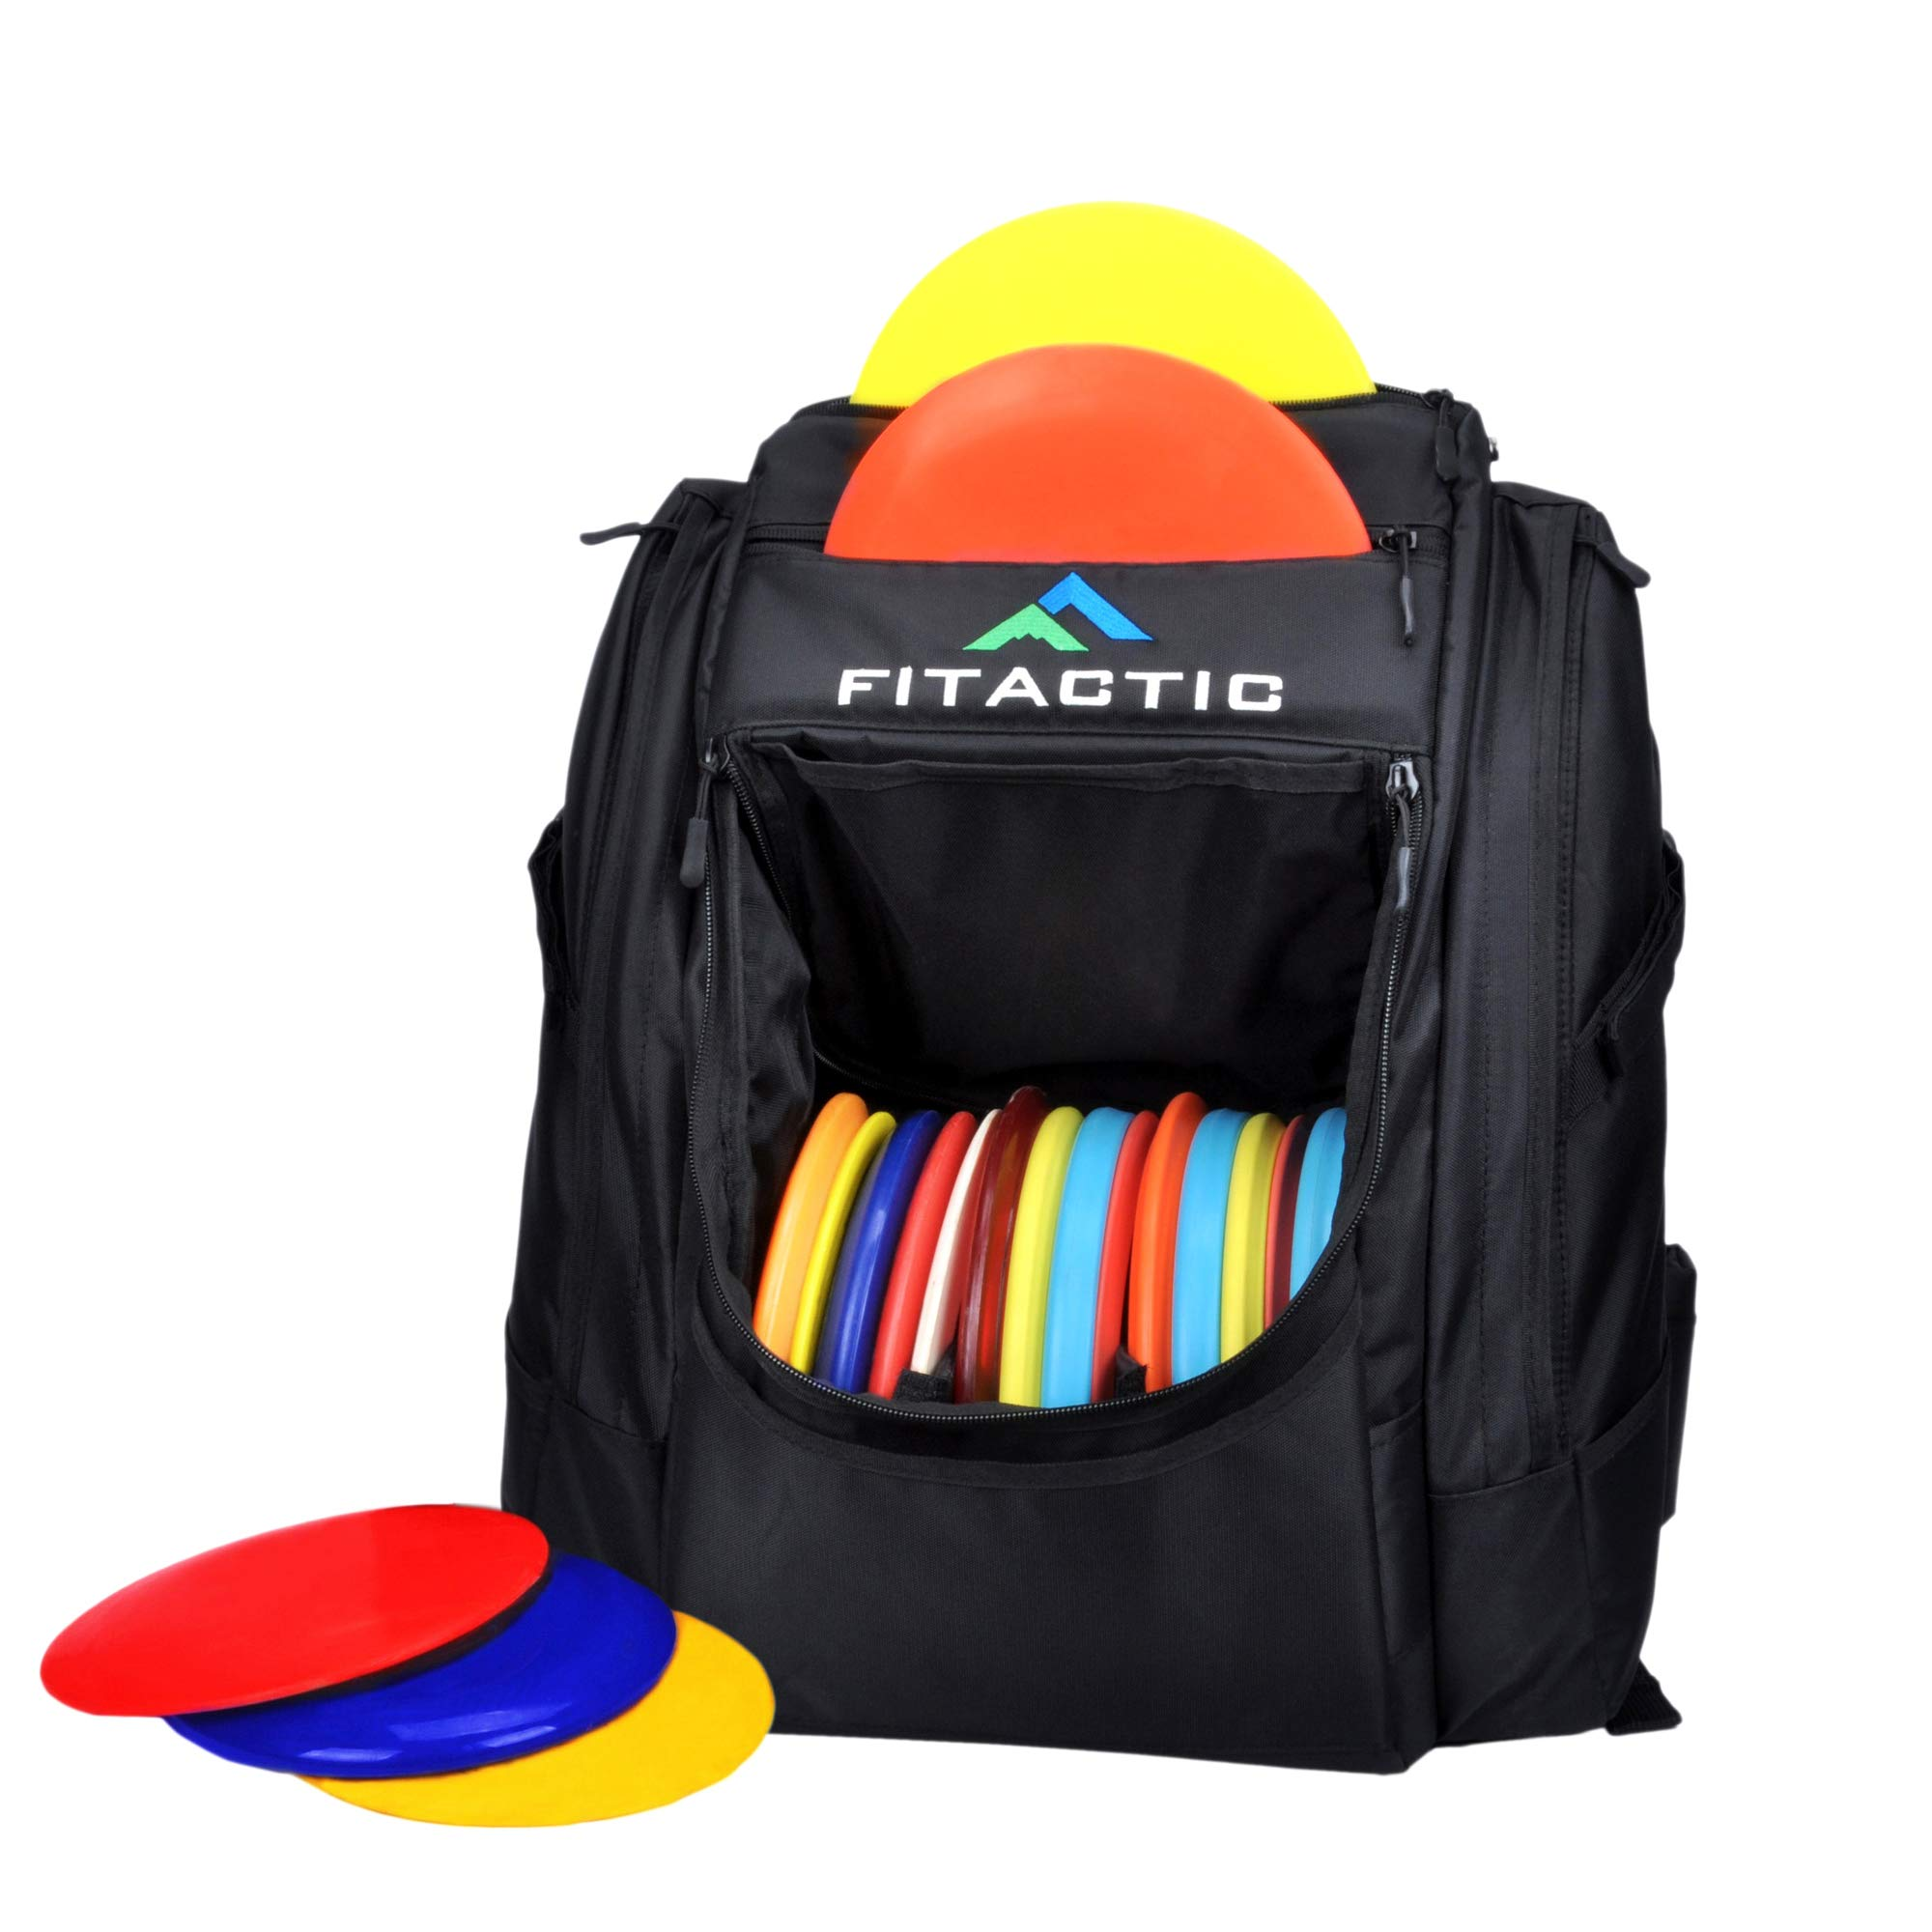 FITactic Luxury Frisbee Disc Golf Bag Backpack (Capacity: 25-30 Discs, Black) by FITactic